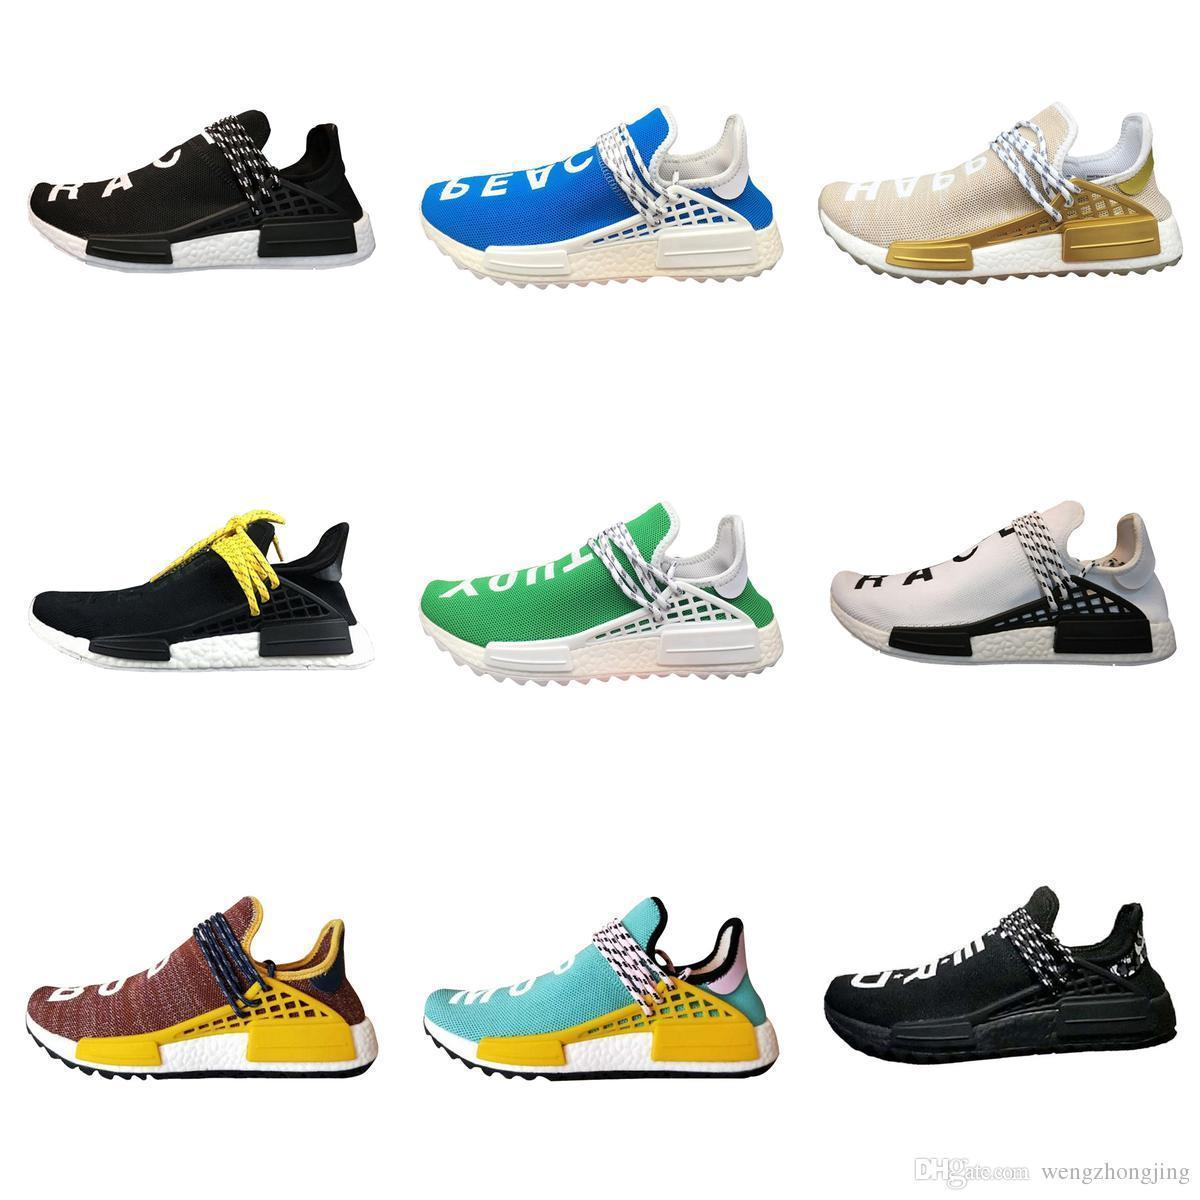 41c0161aaf4a5 2019 Grade A Quality New Human Race Pharrell William Shoes Sports Discount  Athletic Mens Outdoor ShoesTraining Sneaker Size 36 46 Lace Up Flat Shoes  Yellow ...